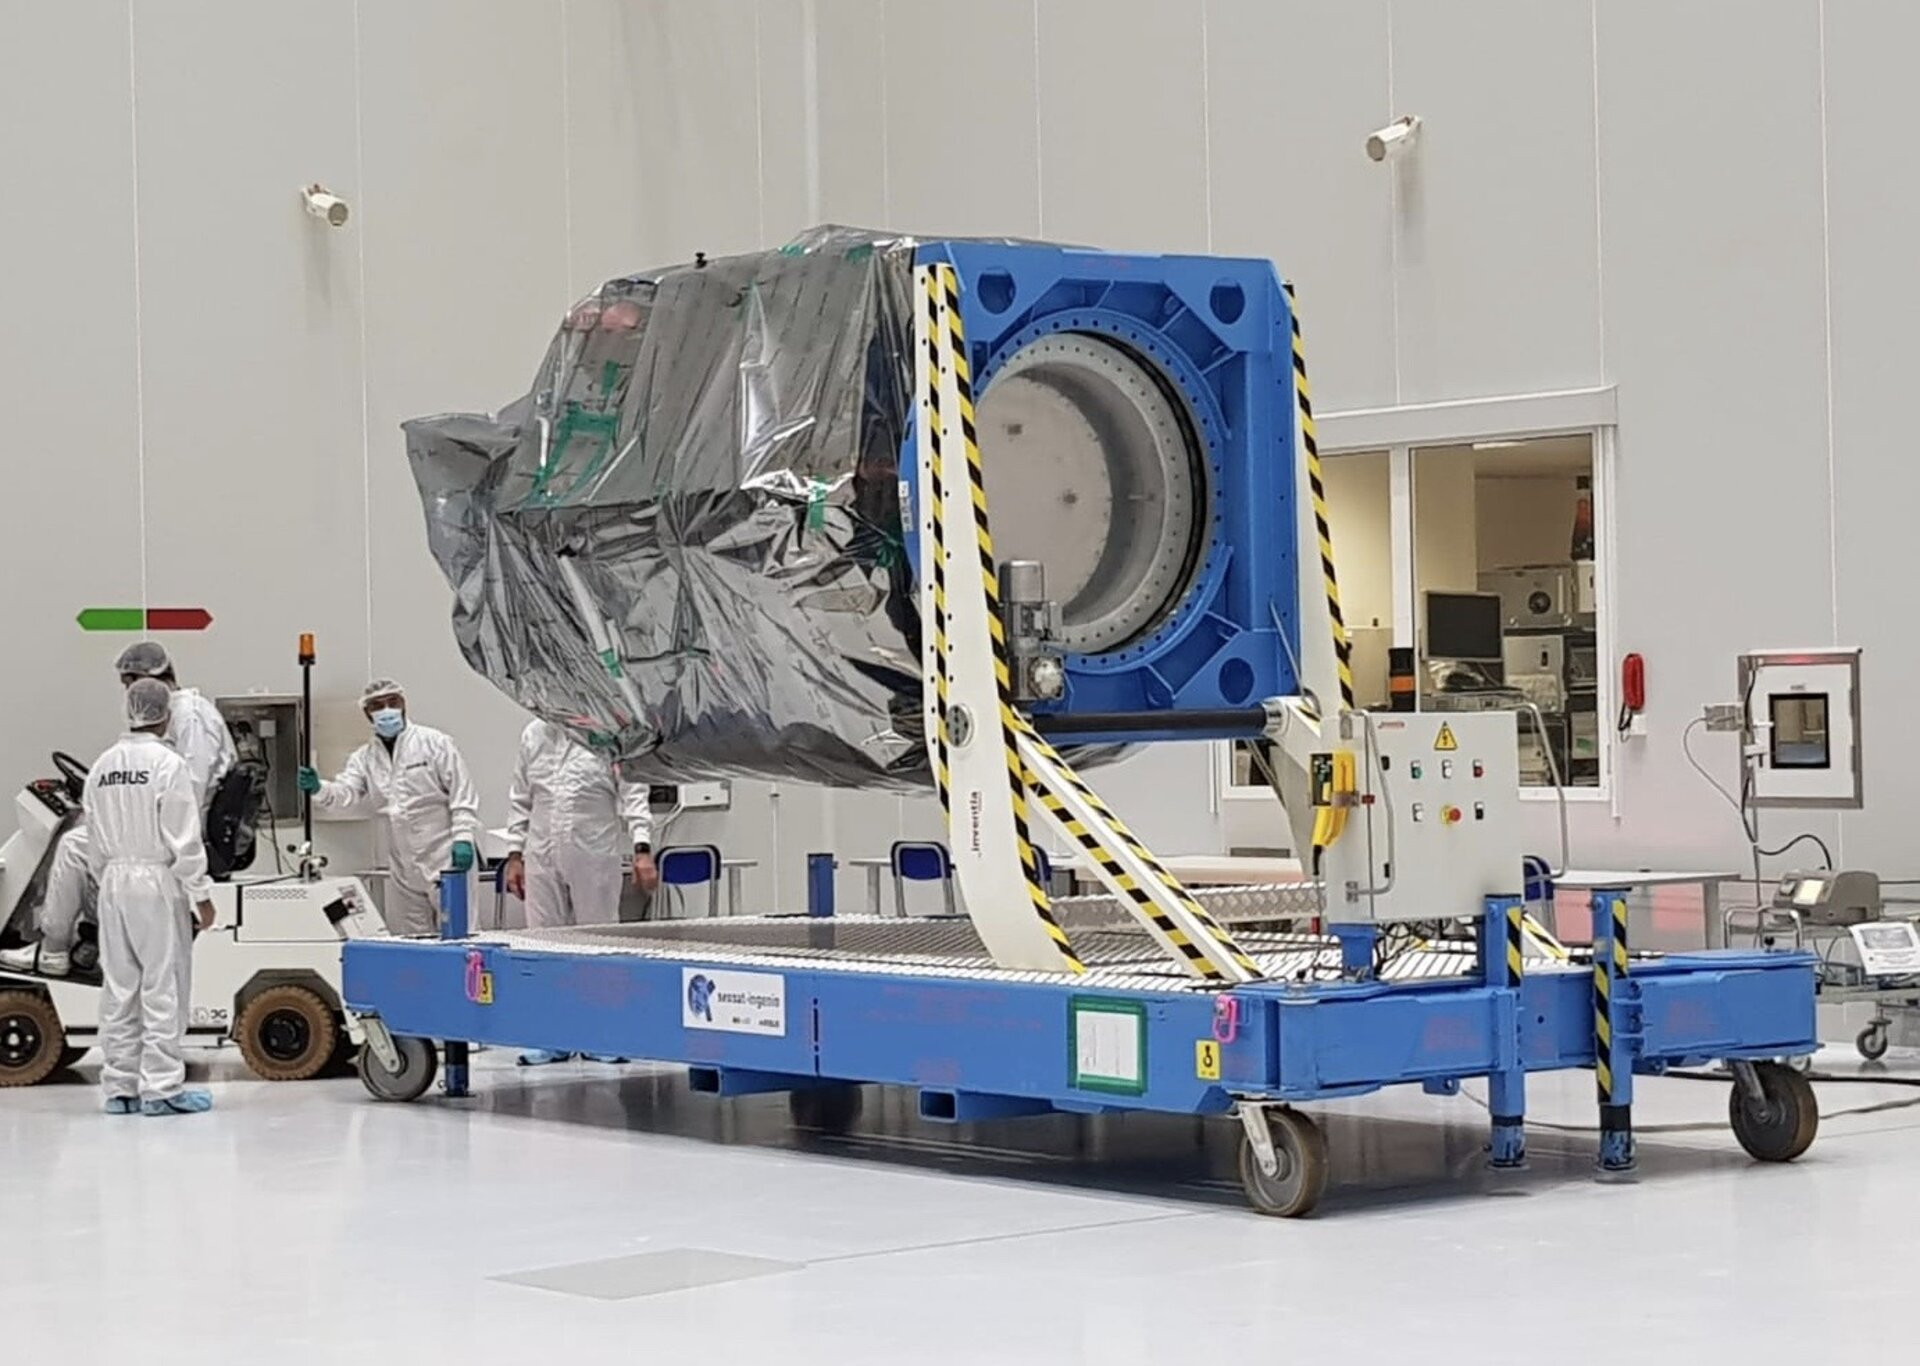 SEOSAT-Ingenio in the cleanroom